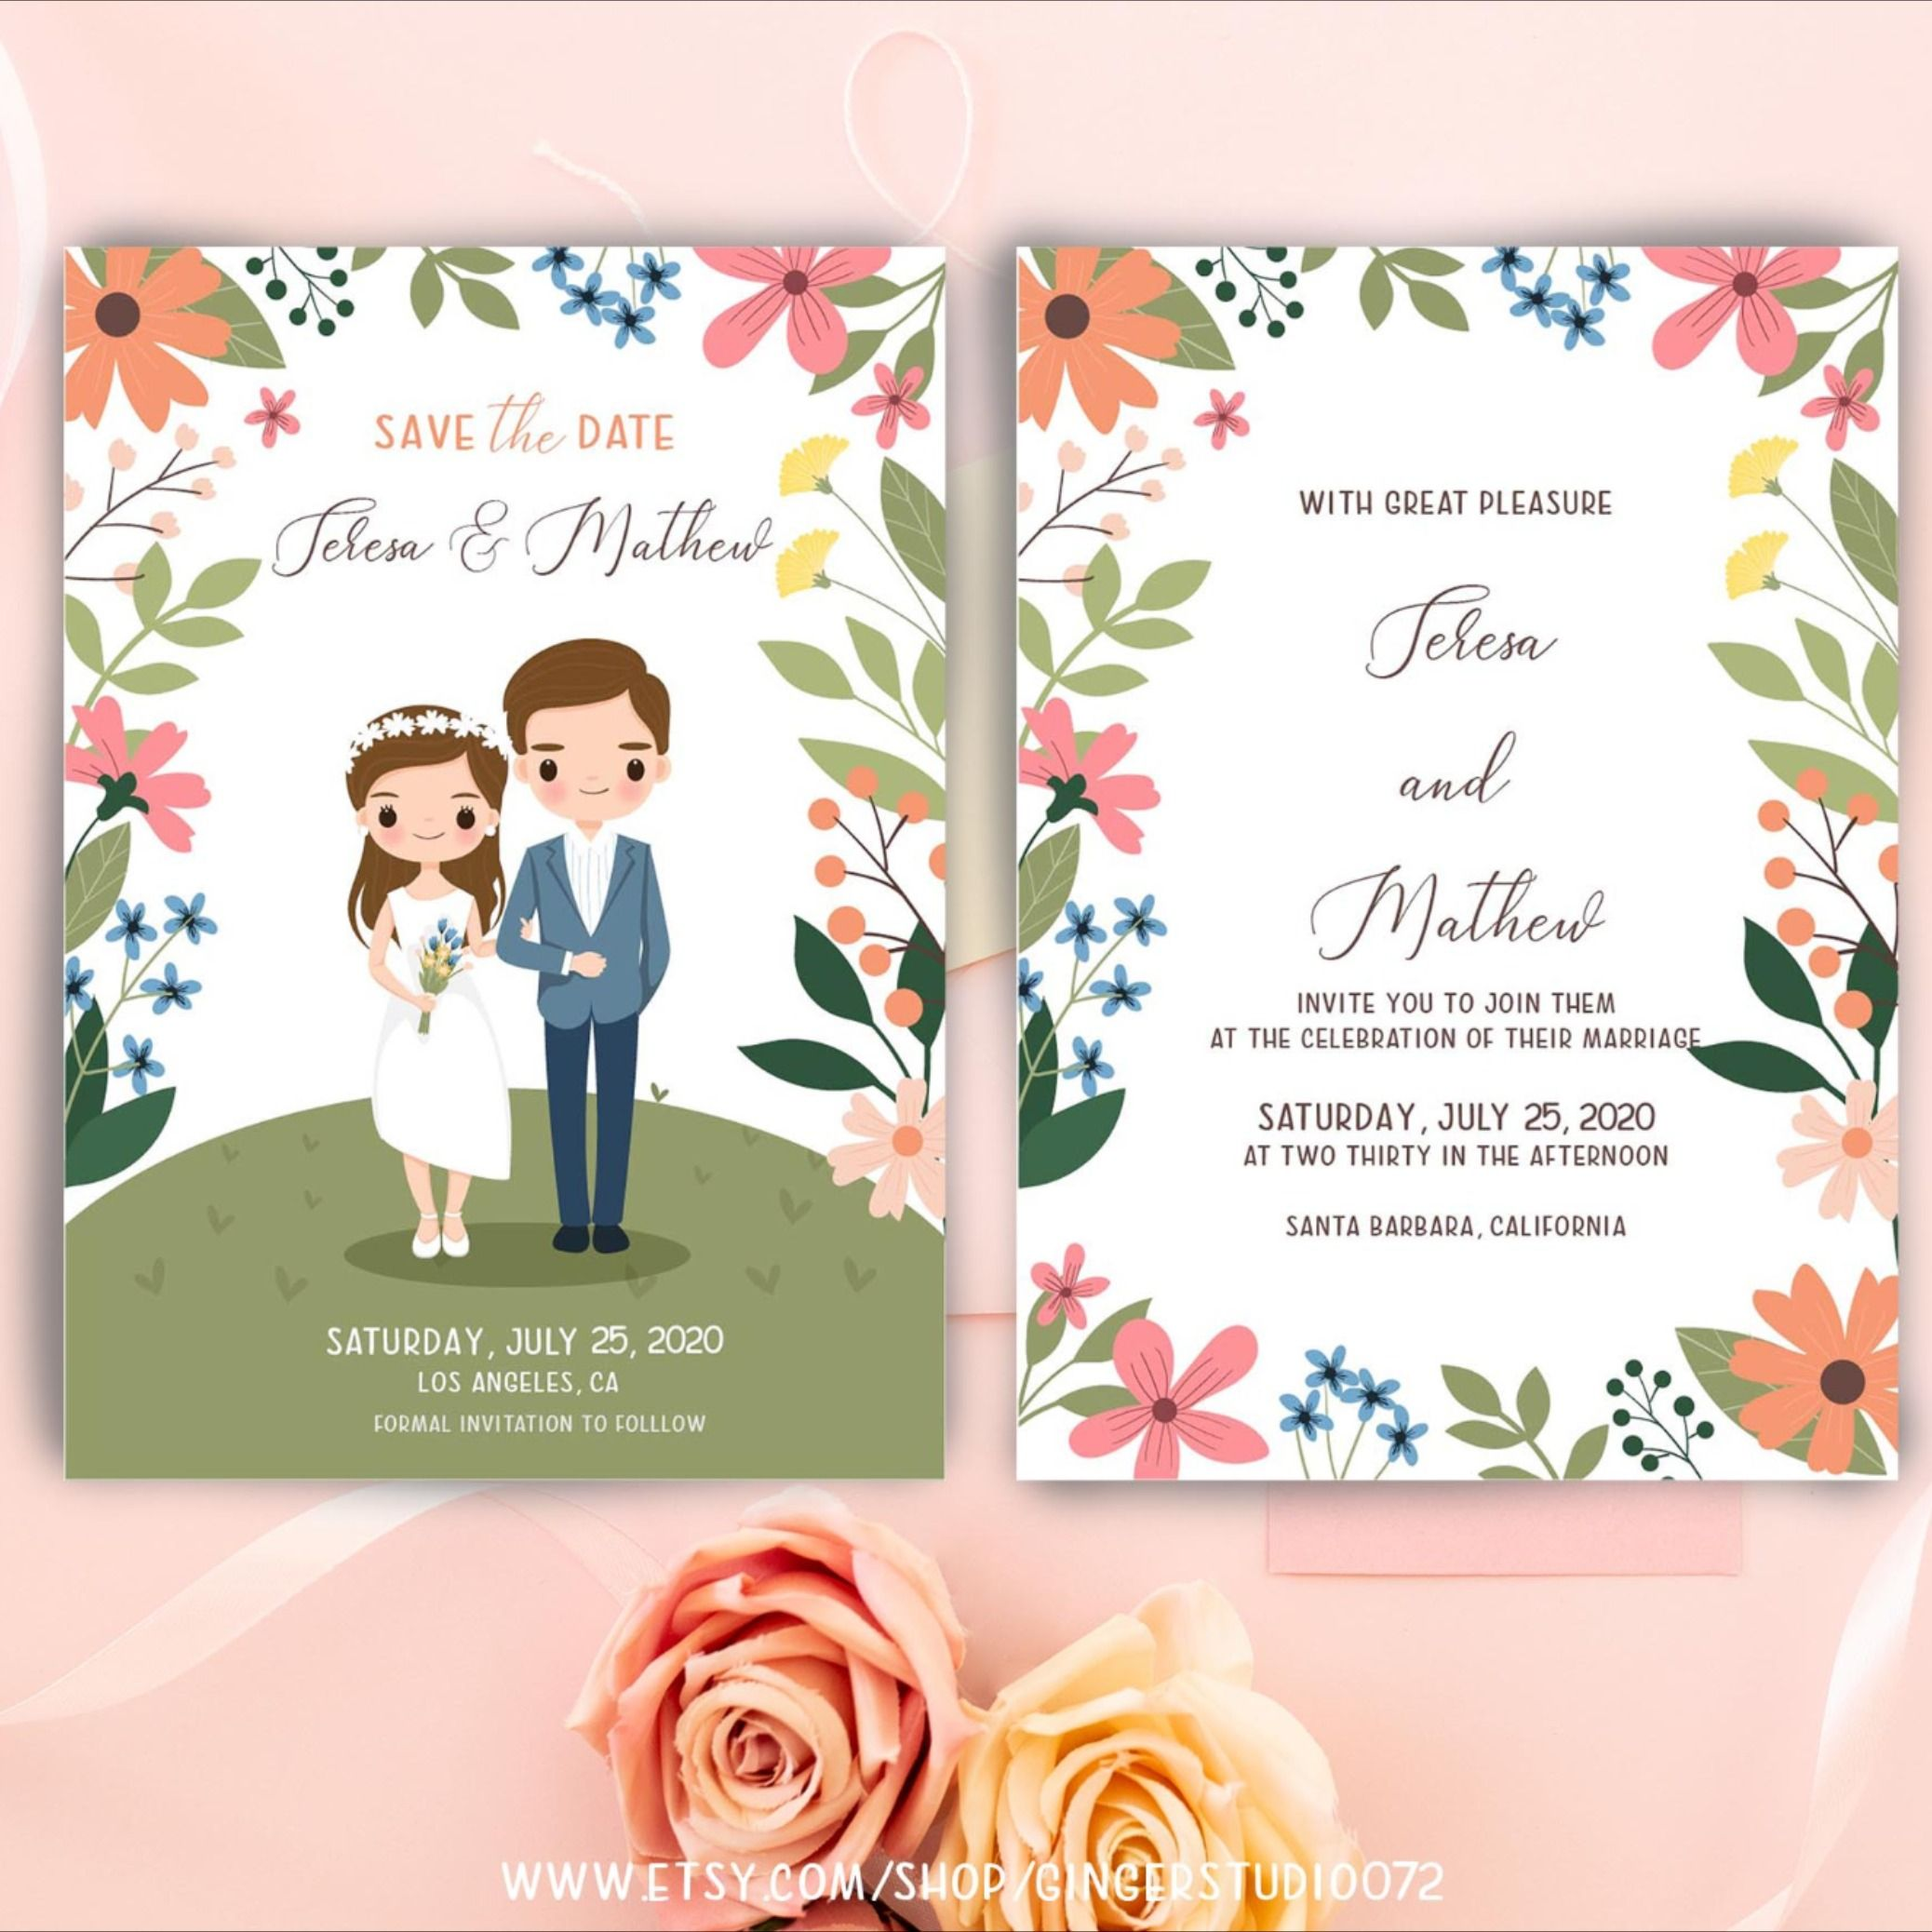 Floral Wedding Templates Includes 20 Designs Word Doc Psd Indesign Illustrator Publisher Free Wedding Invitation Templates Wedding Invitation Templates Wedding Invitation Card Template